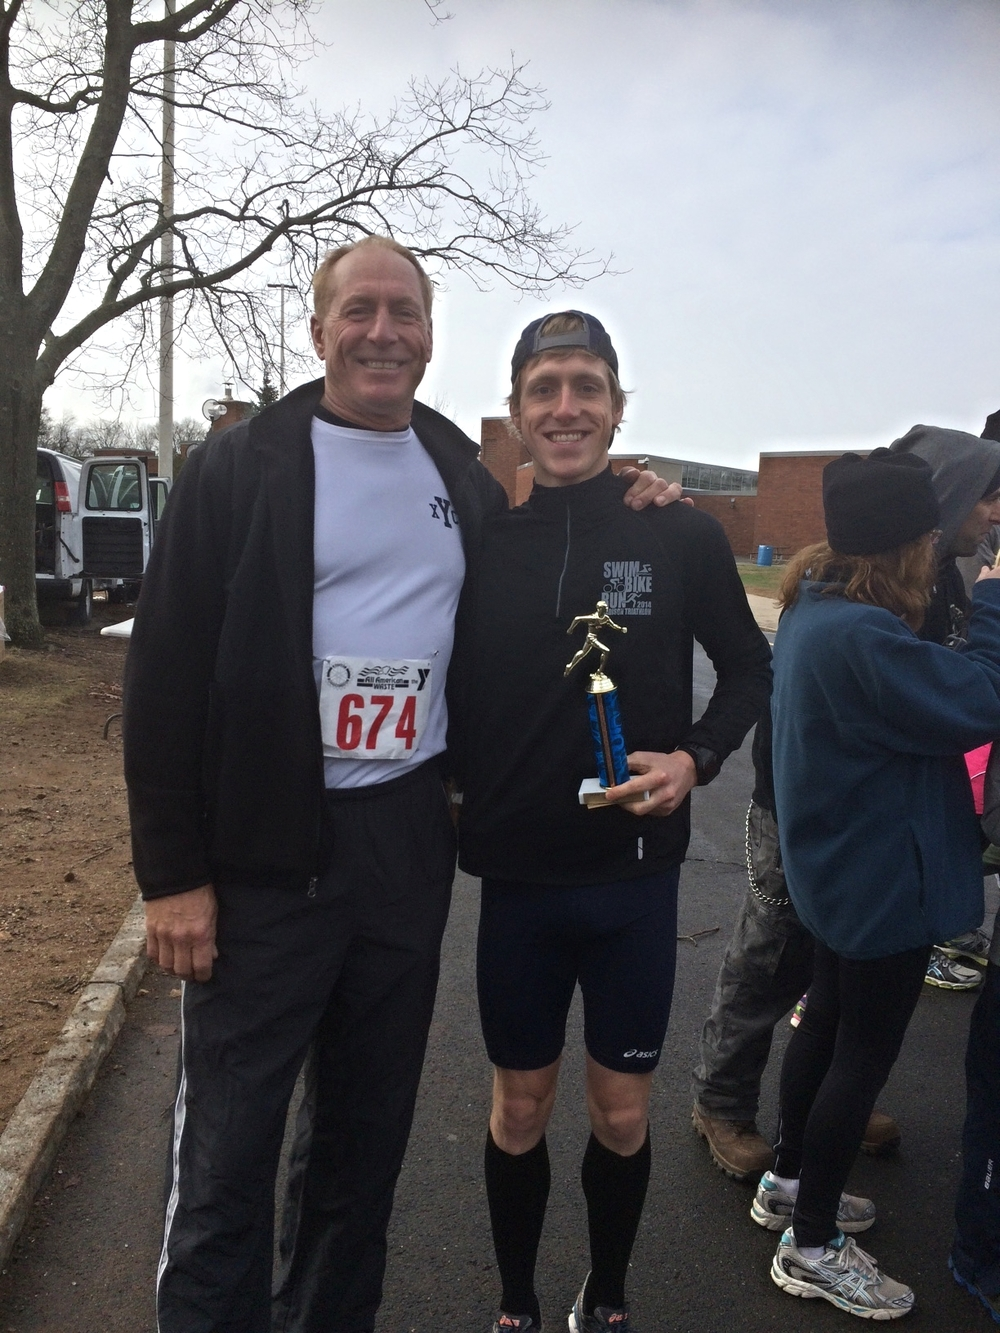 My dad and I after the Turkey Trot on Thanksgiving morning!